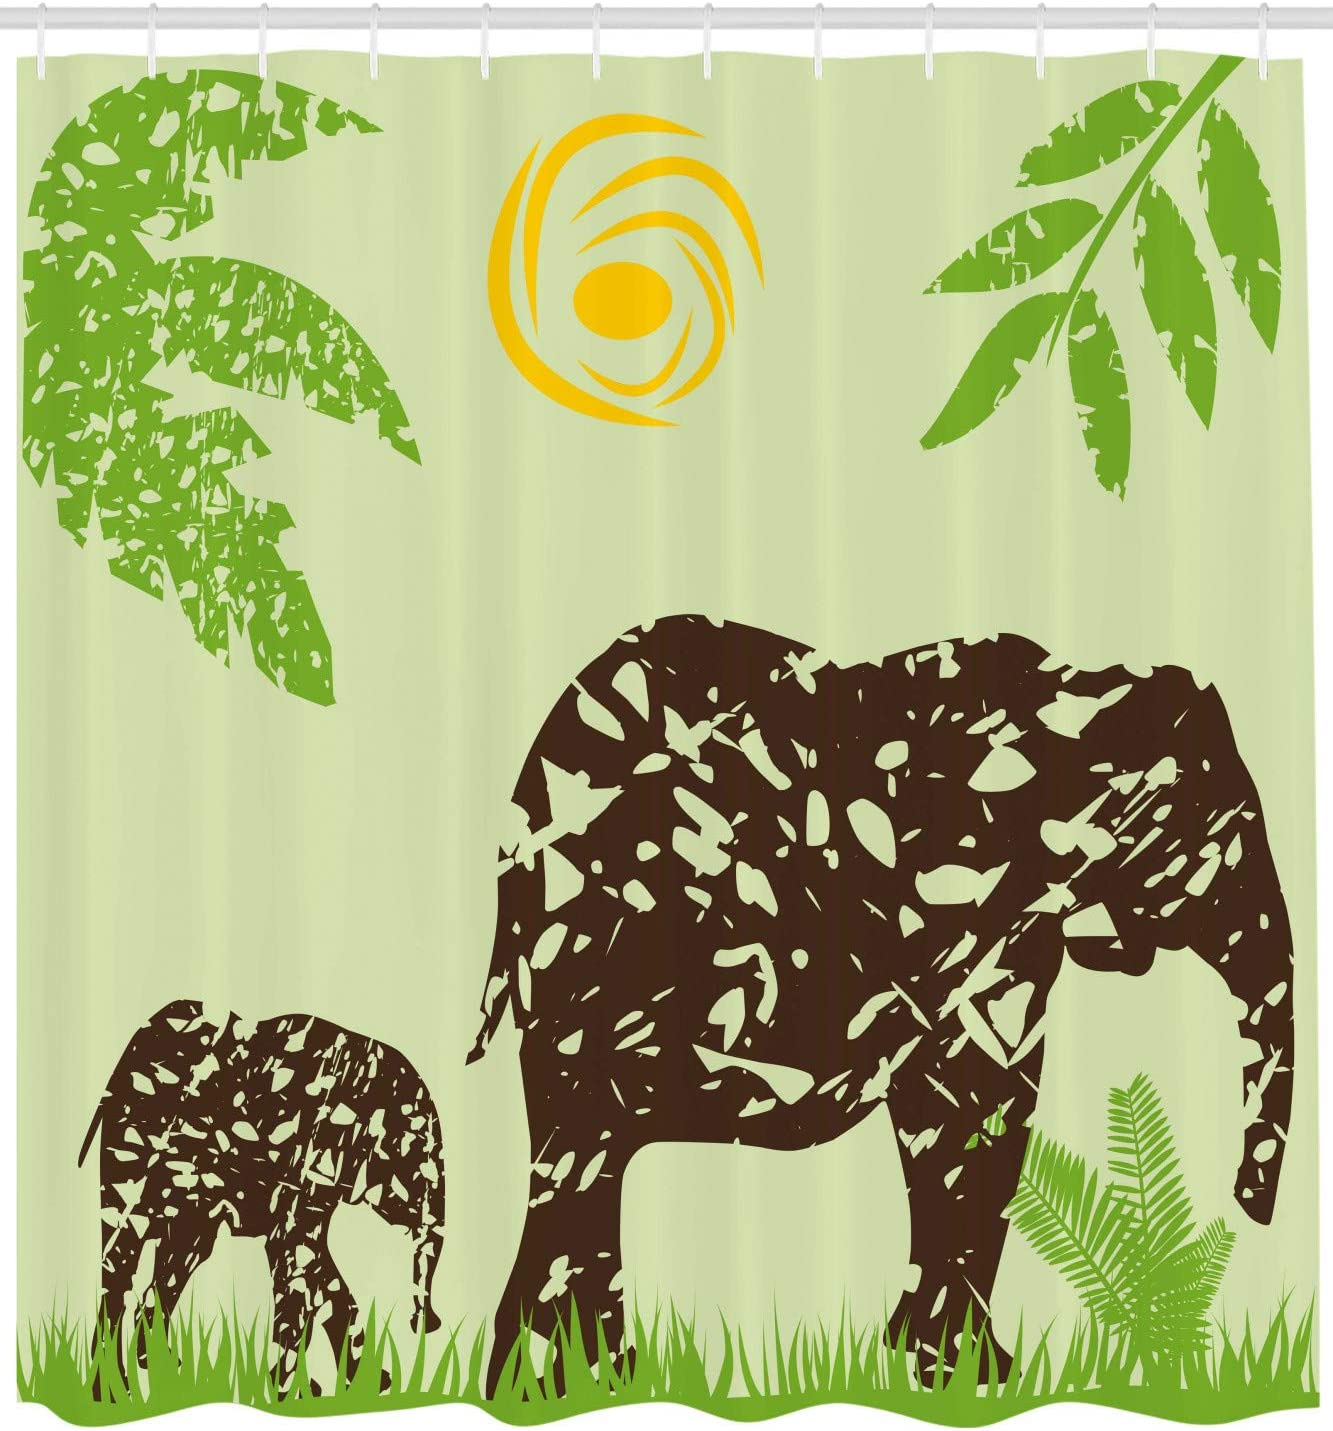 Green Brown African Elephants on the Field Walking under Sun Jungle Cute Animal Art Print Ambesonne Grunge Decor Shower Curtain by Fabric Bathroom Decor Set with Hooks 70 Inches